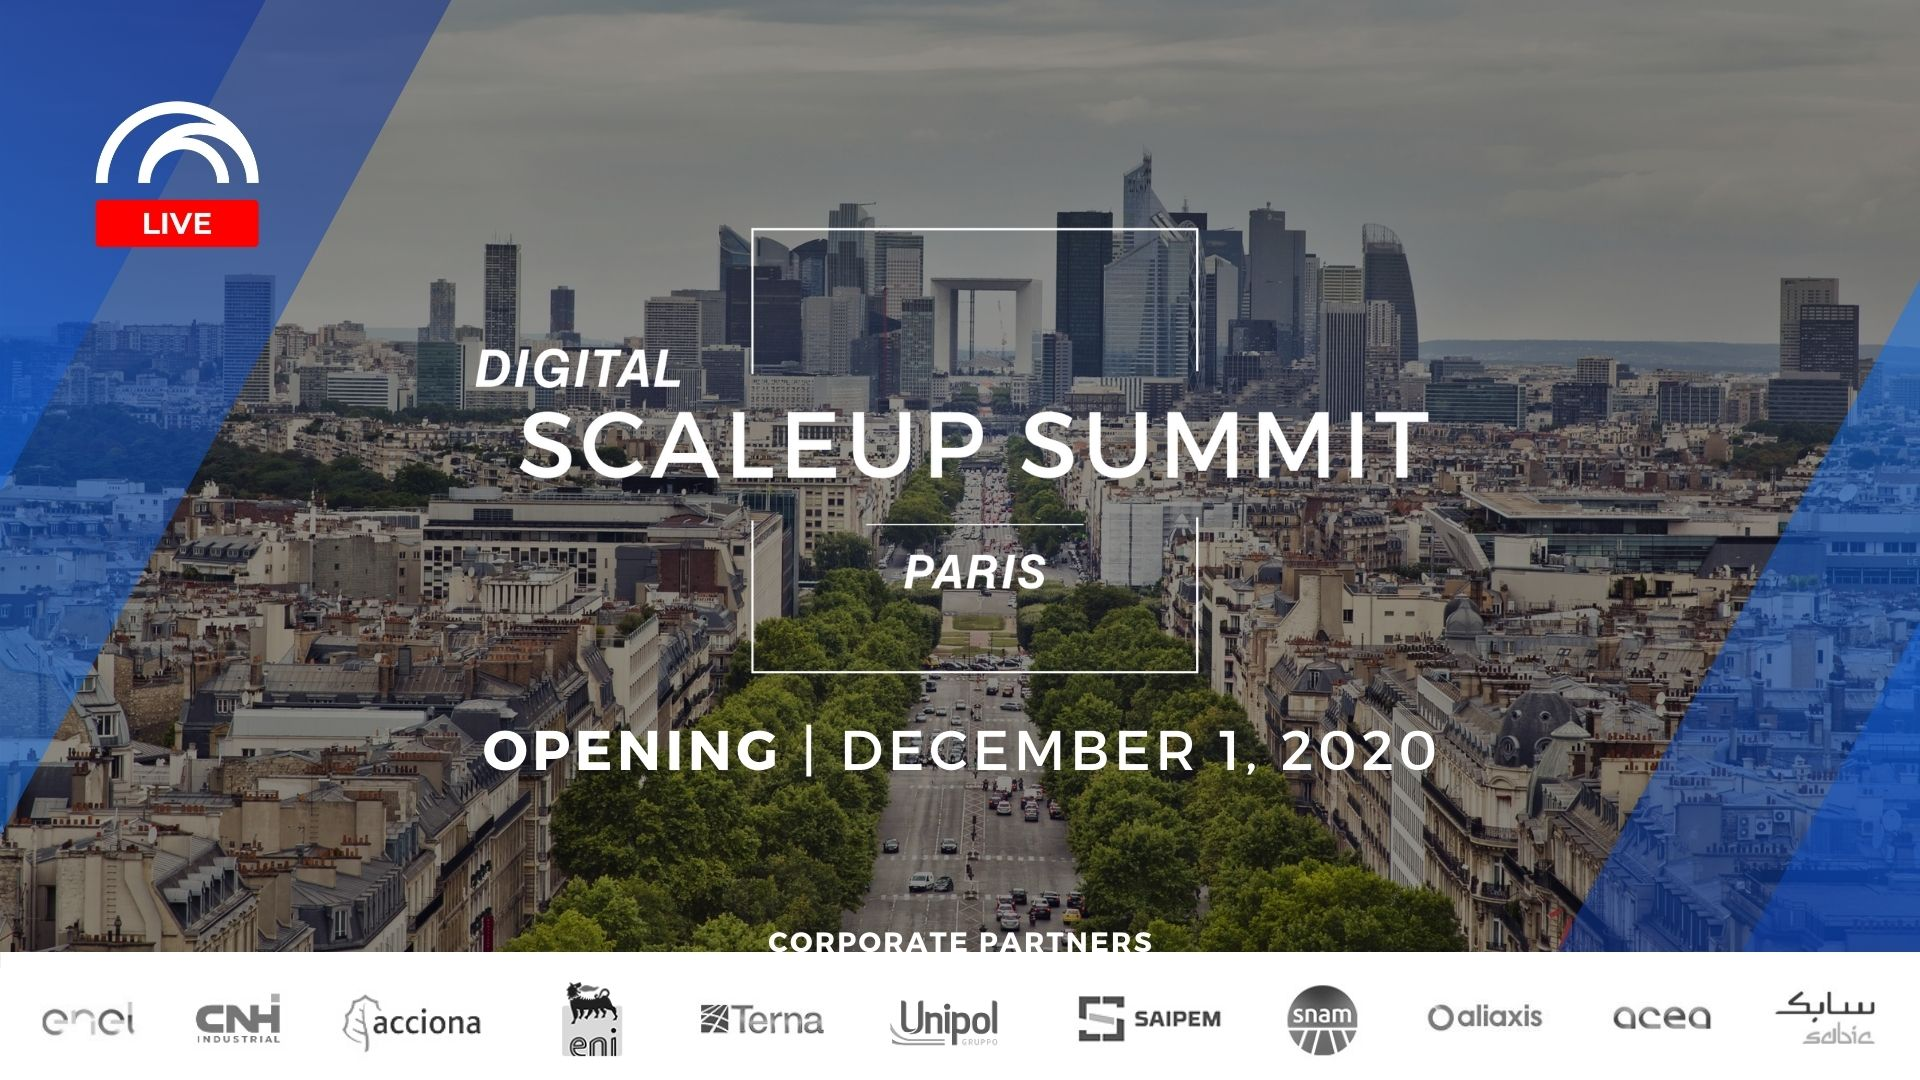 Digital Scaleup Summit